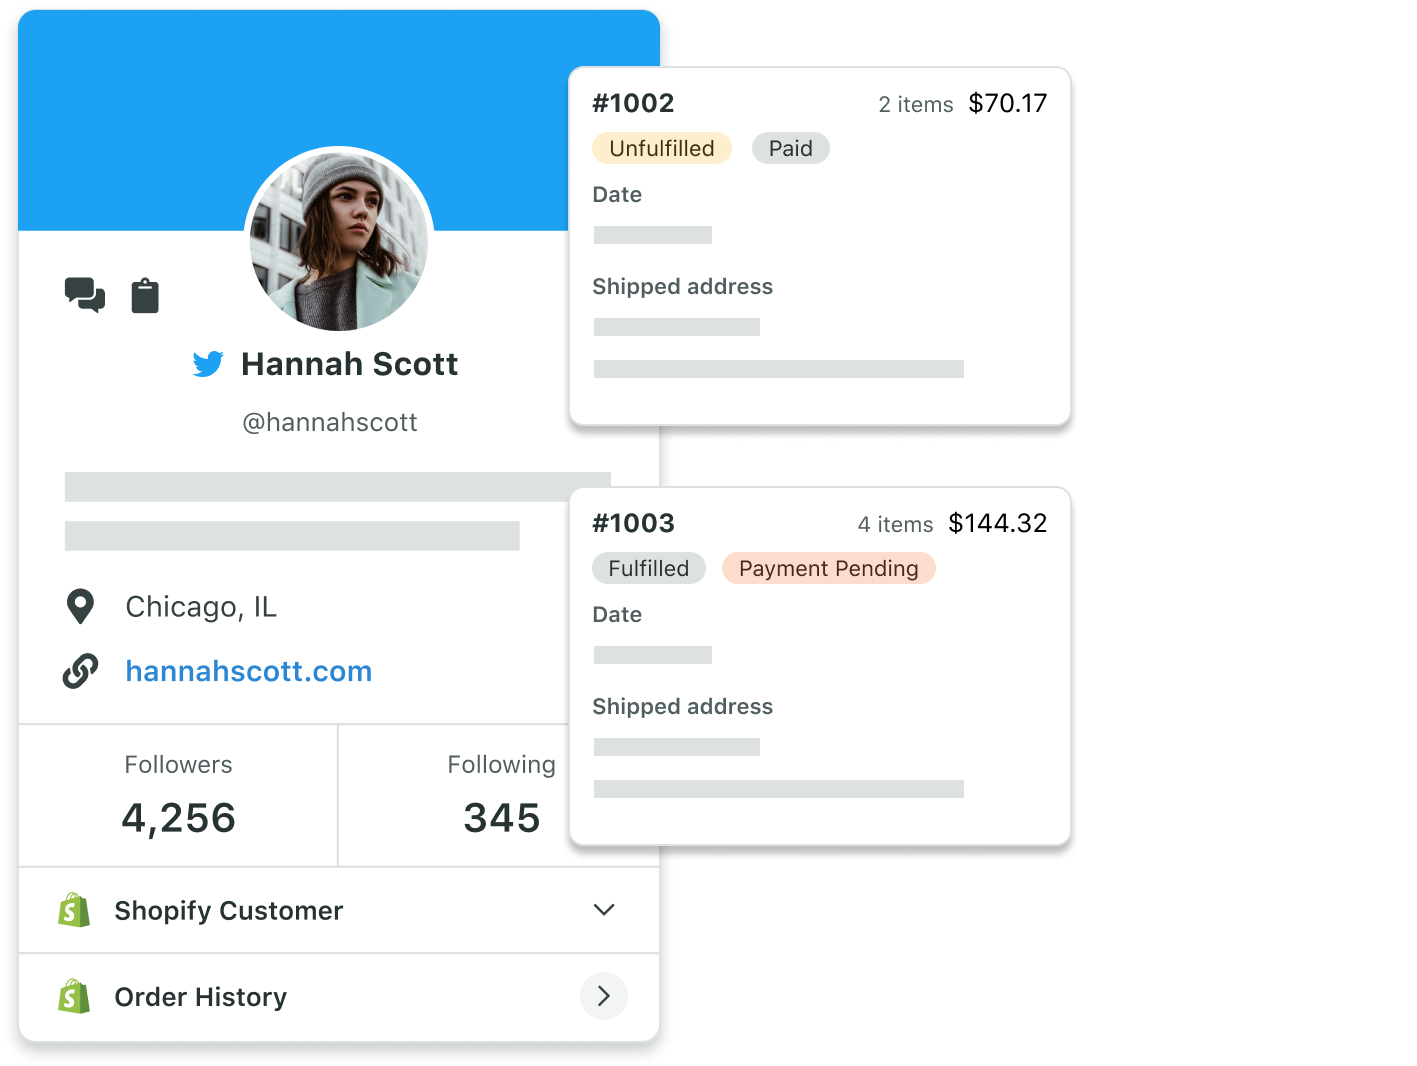 Example of a Shopify profile connected within the Sprout Social platform.